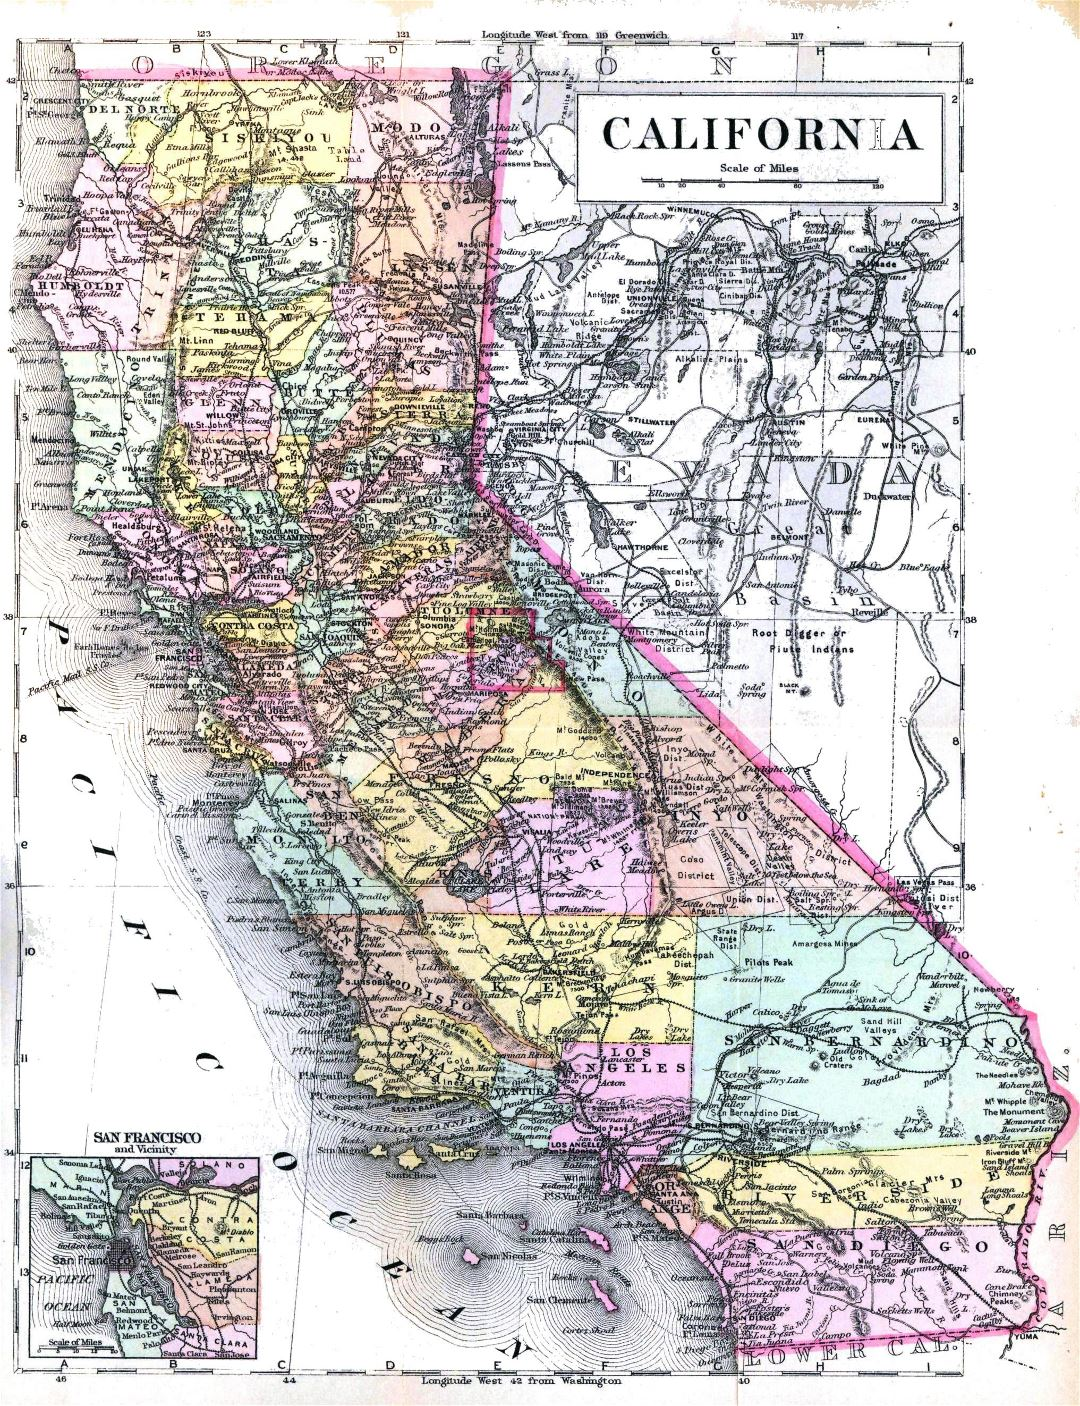 Large detaled old administrative map of California state - 1896